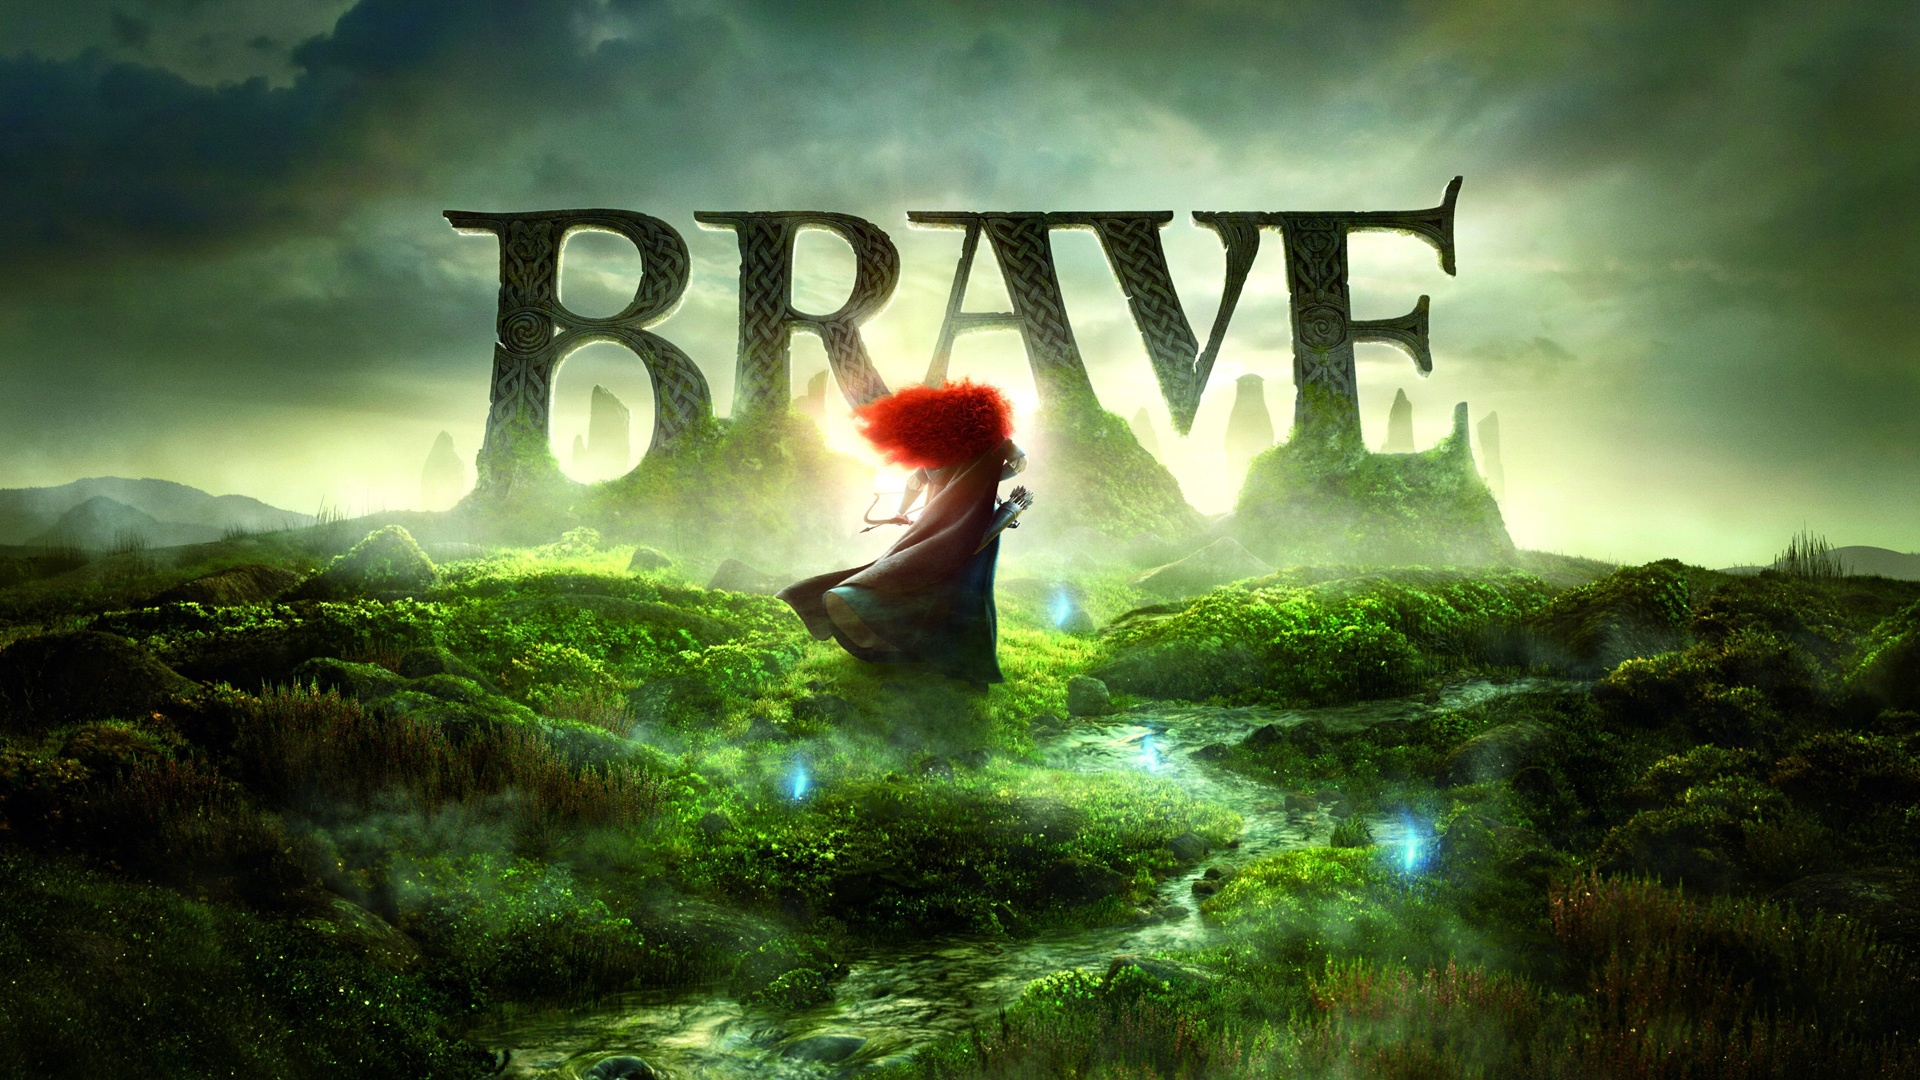 13 Hd Brave Movie Wallpapers